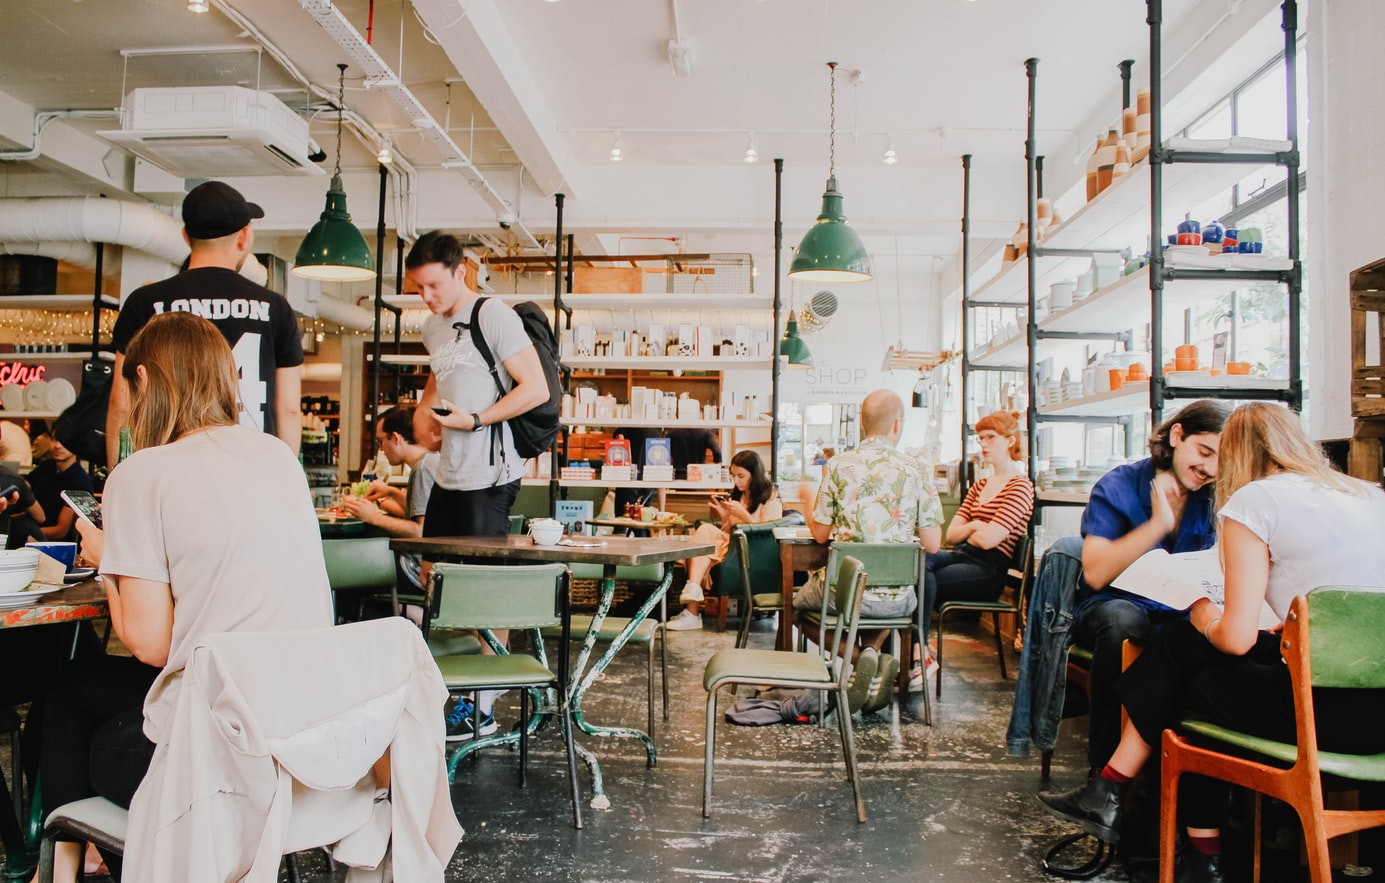 How Small Business Can Create Change in Your Community